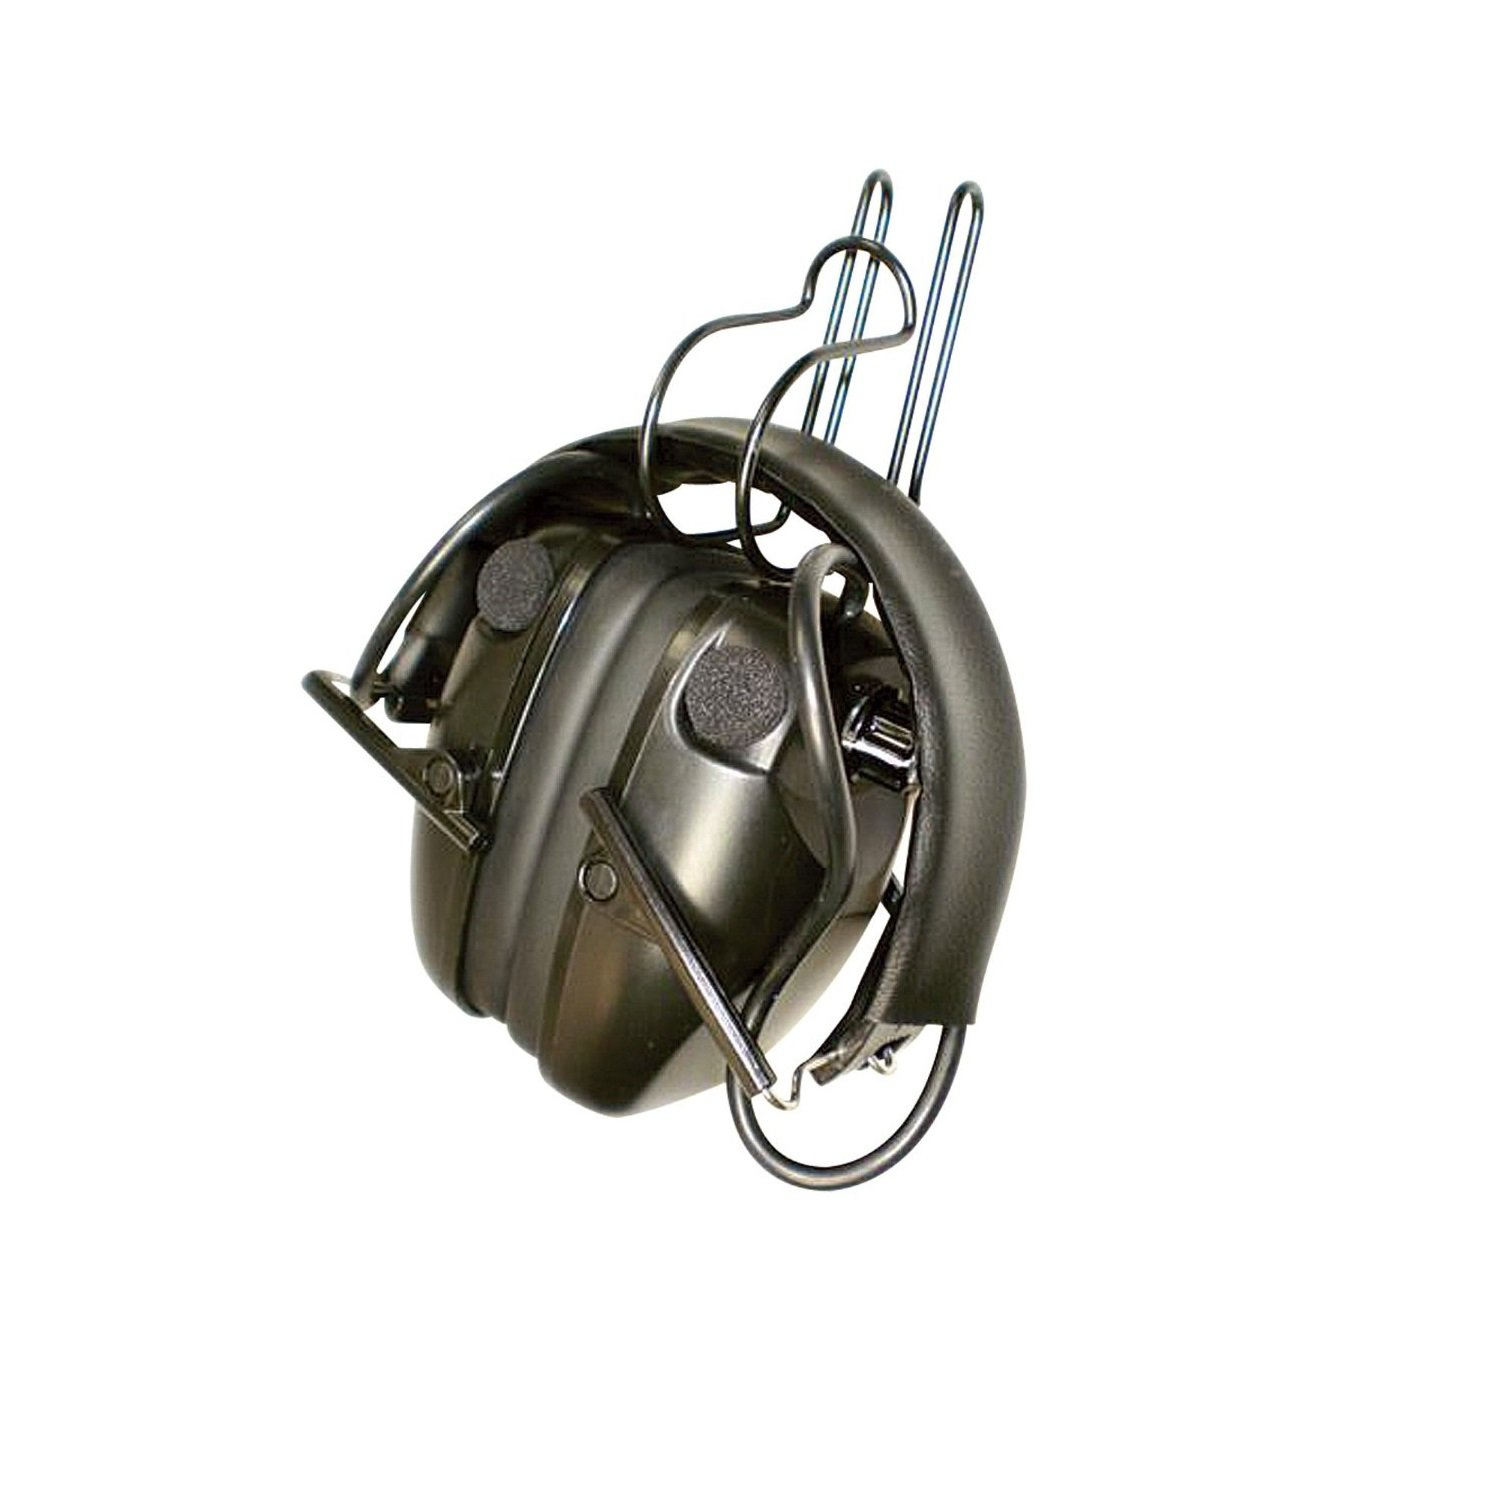 Hyskore 1006931 Stereo Electronic Hearing Protector .30-06 Outdoors